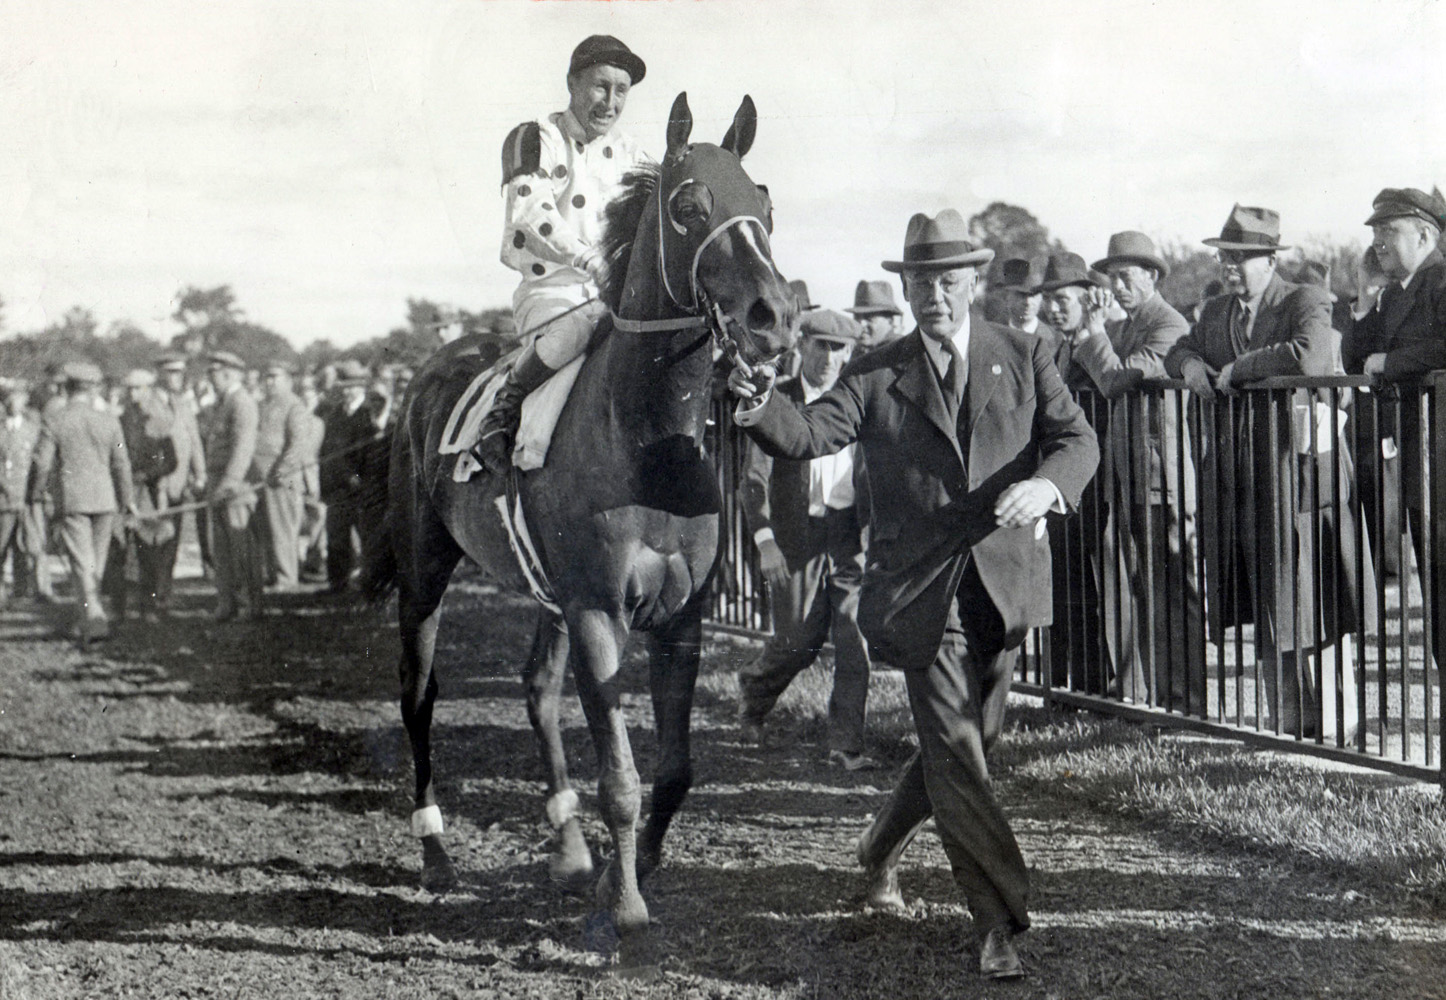 William Woodward, Sr. leads in Granville (James Stout up) after winning a race (Museum Collection)